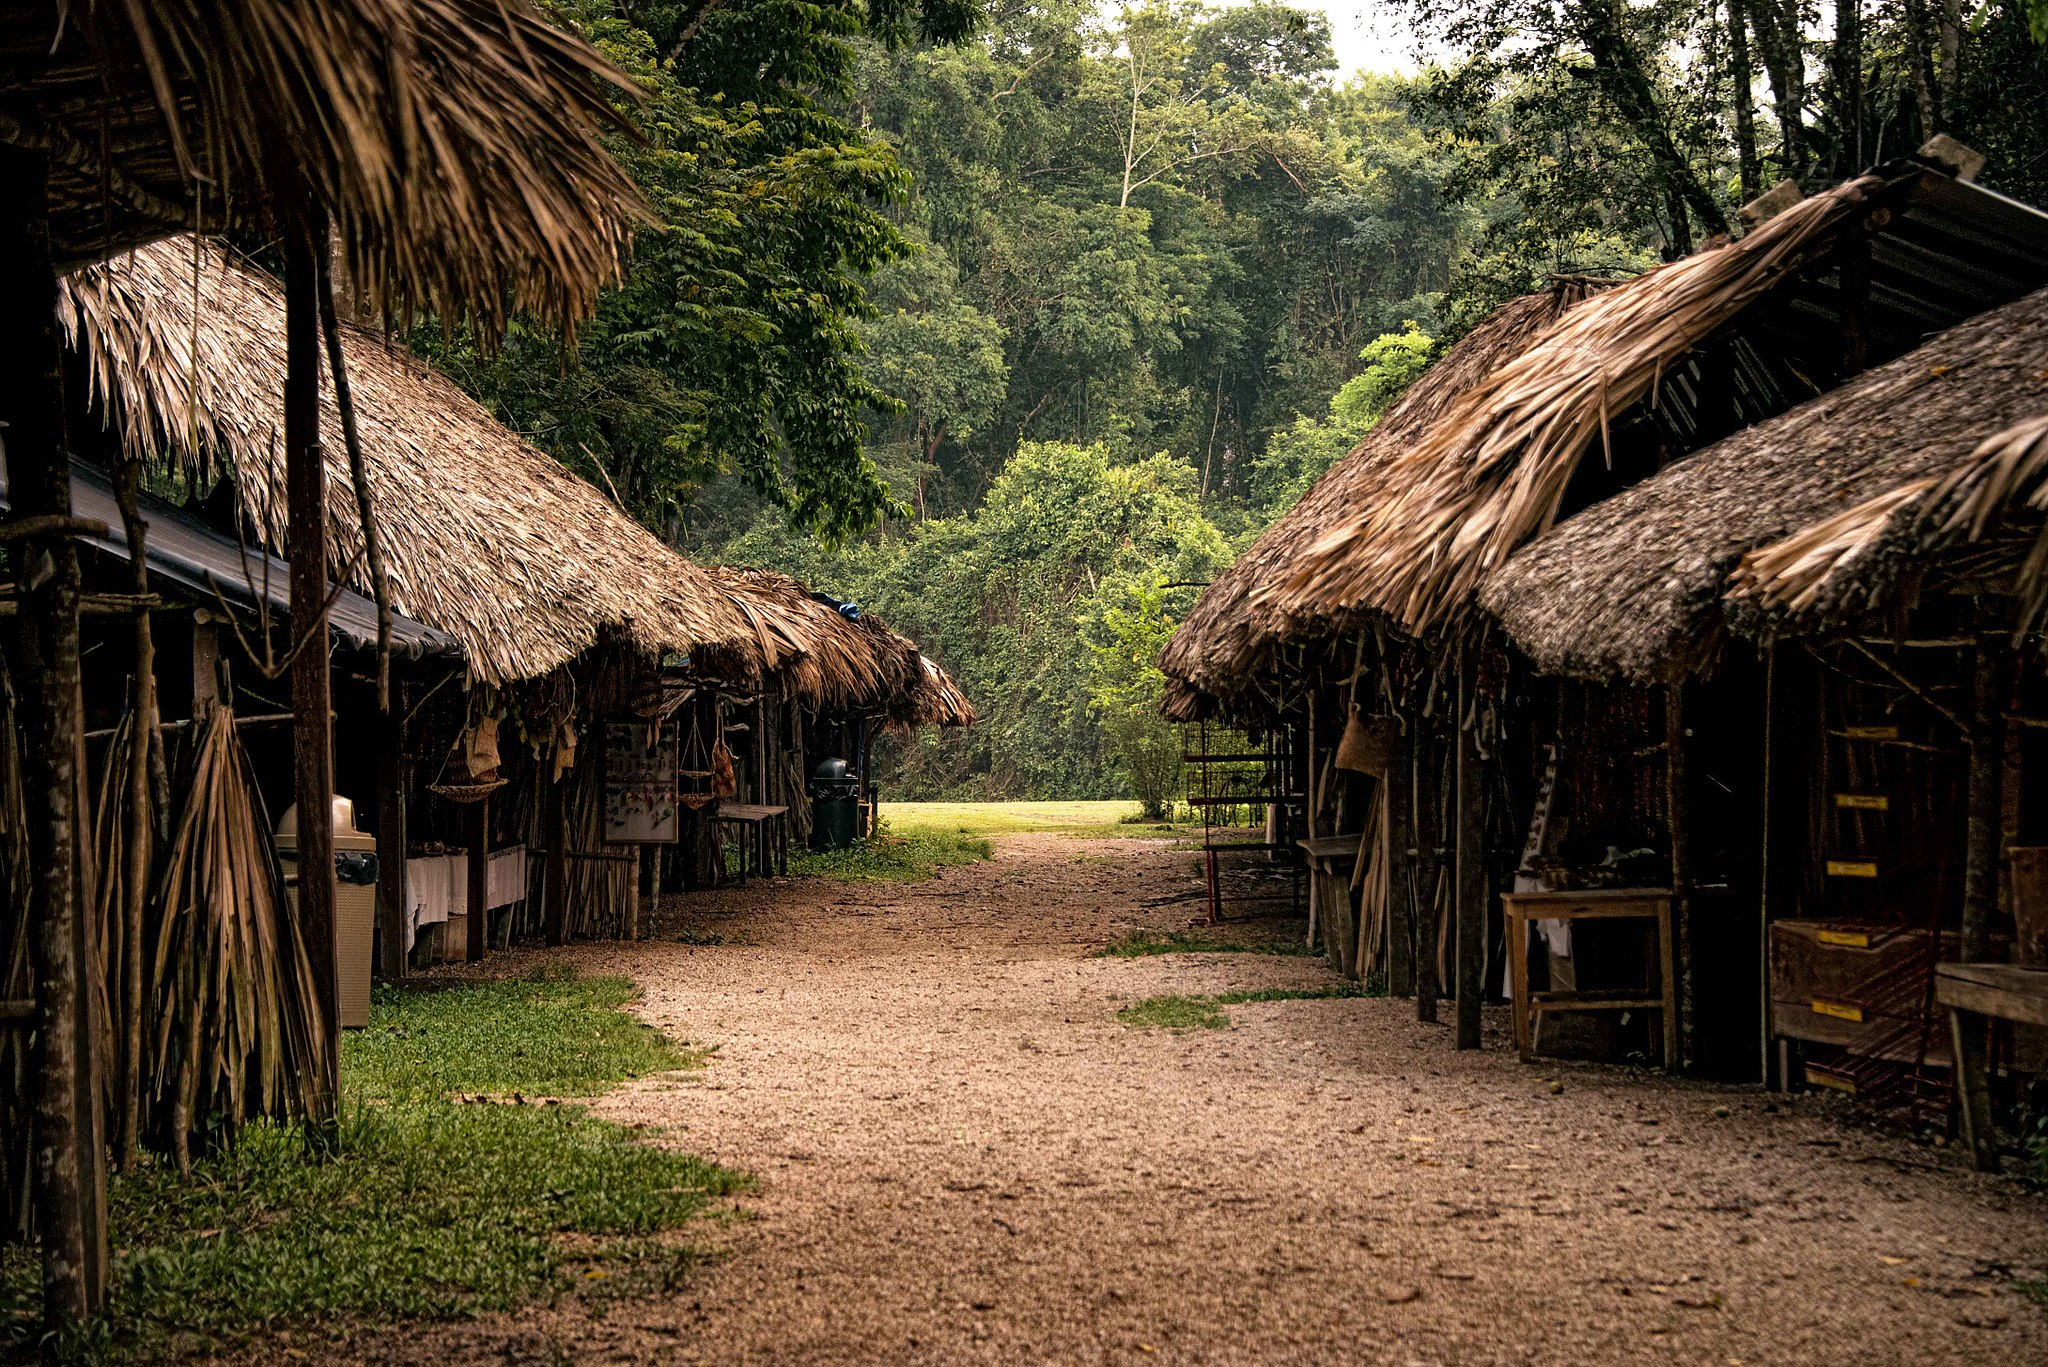 A footpath travels between two rows of houses, covered in thatch roof, with green jungle behind.